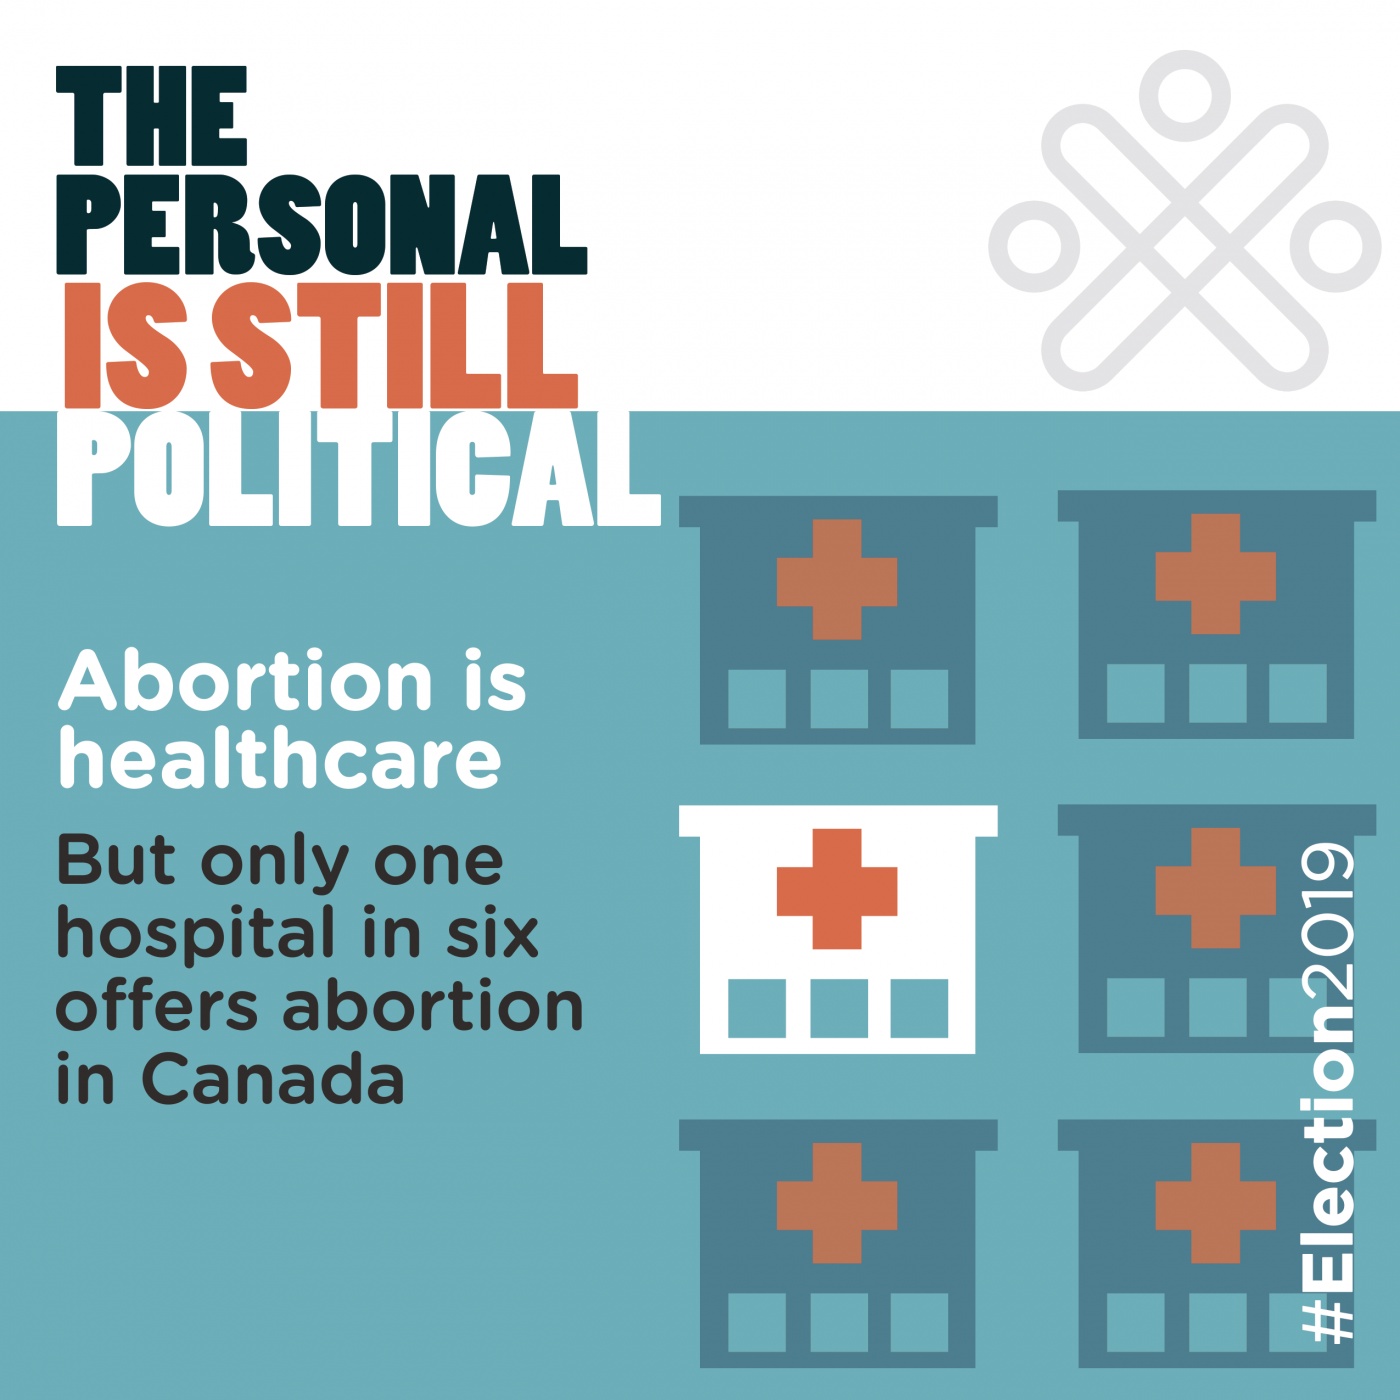 only 1 hospital in 6 offer abortion in Canada